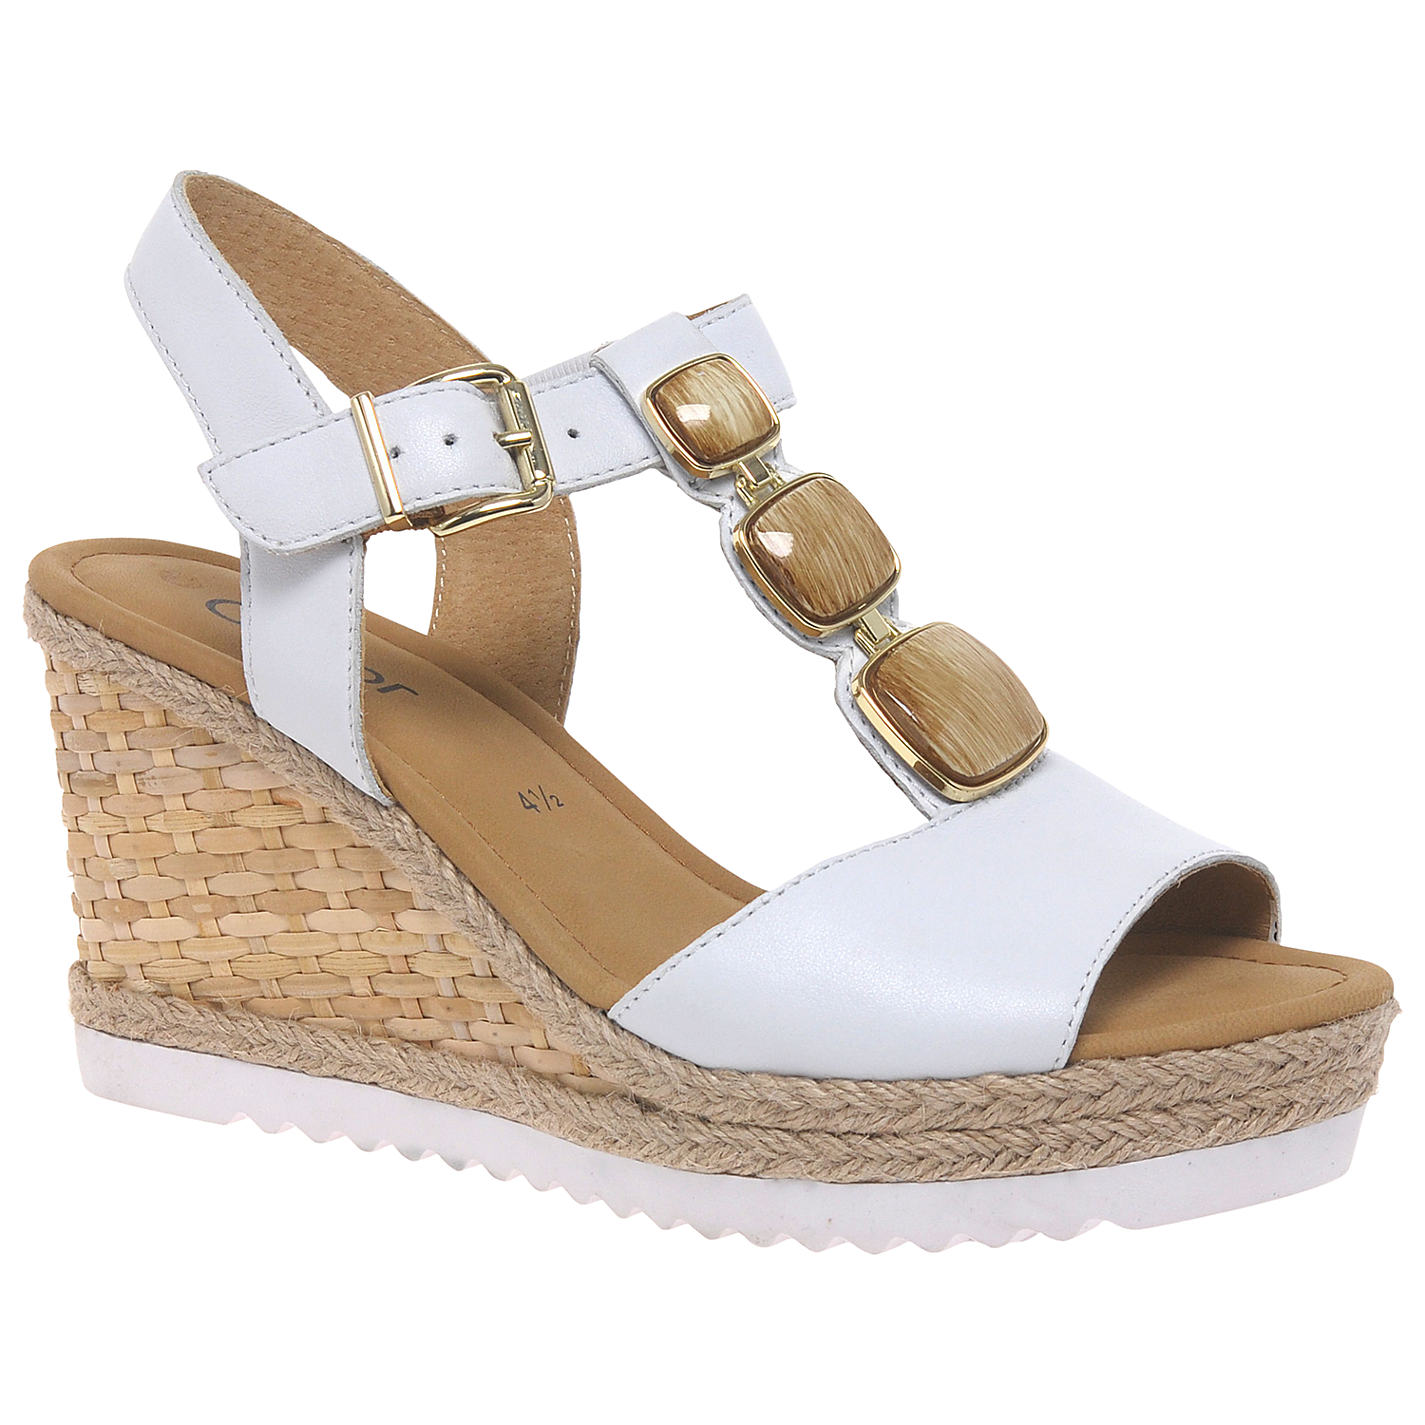 Buy Wedges for women online at Flipkart Wedges are sandals or boots boasting a sole in the form of a wedge with a single piece of material that works both as the sole and heel.